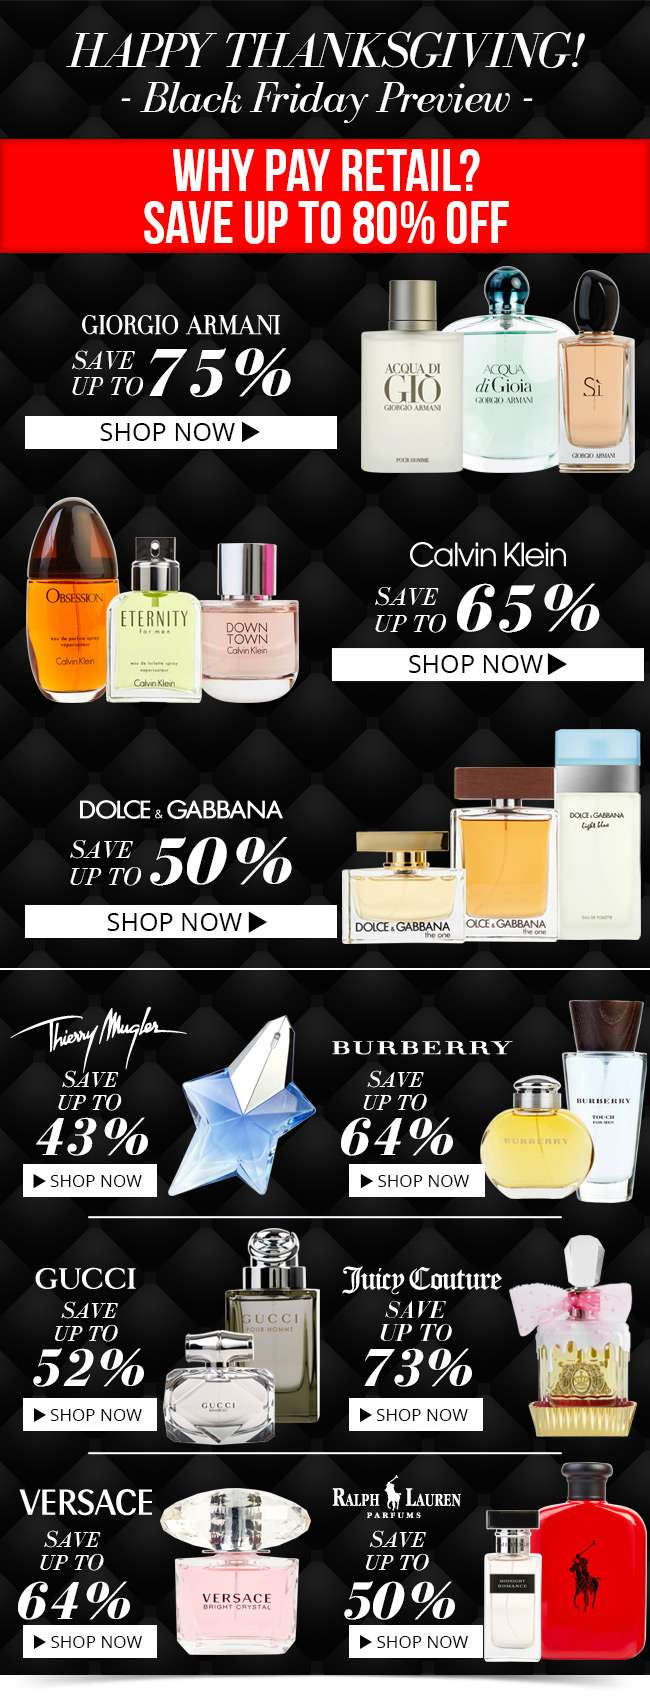 Black Friday Preview: Save up to 80% - Why pay retail prices?